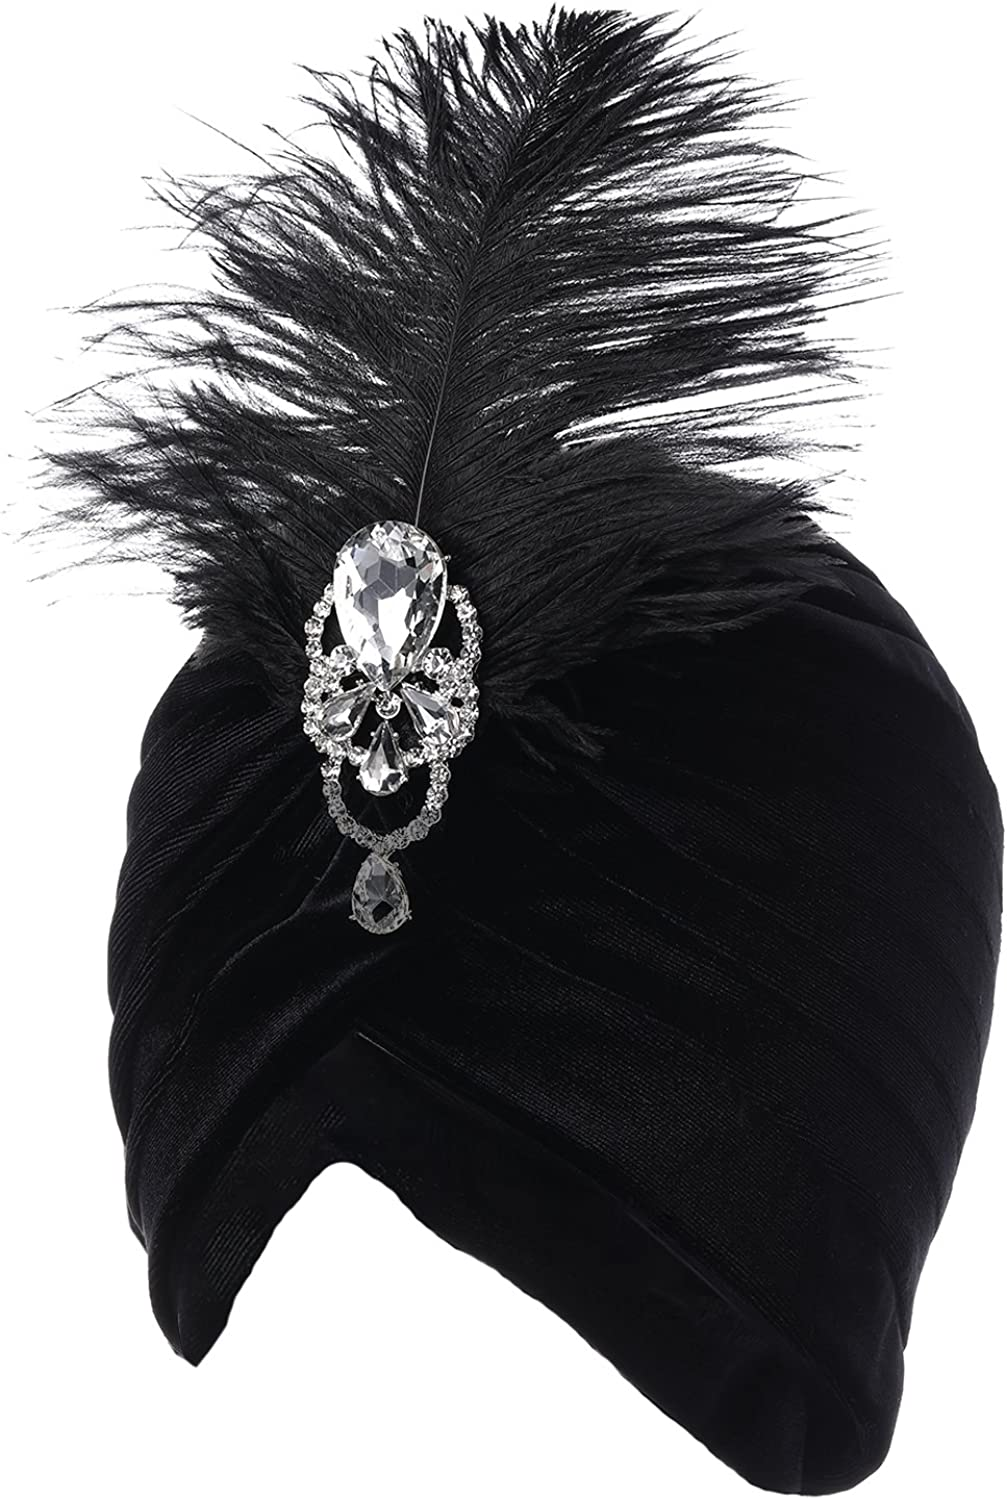 1920s Style Hats ArtiDeco Ruffle Turban Hat for Women Feather Turban Hat with Detachable Crystal Brooch Headwraps Knit Pleated Turban Hat Vintage £10.99 AT vintagedancer.com